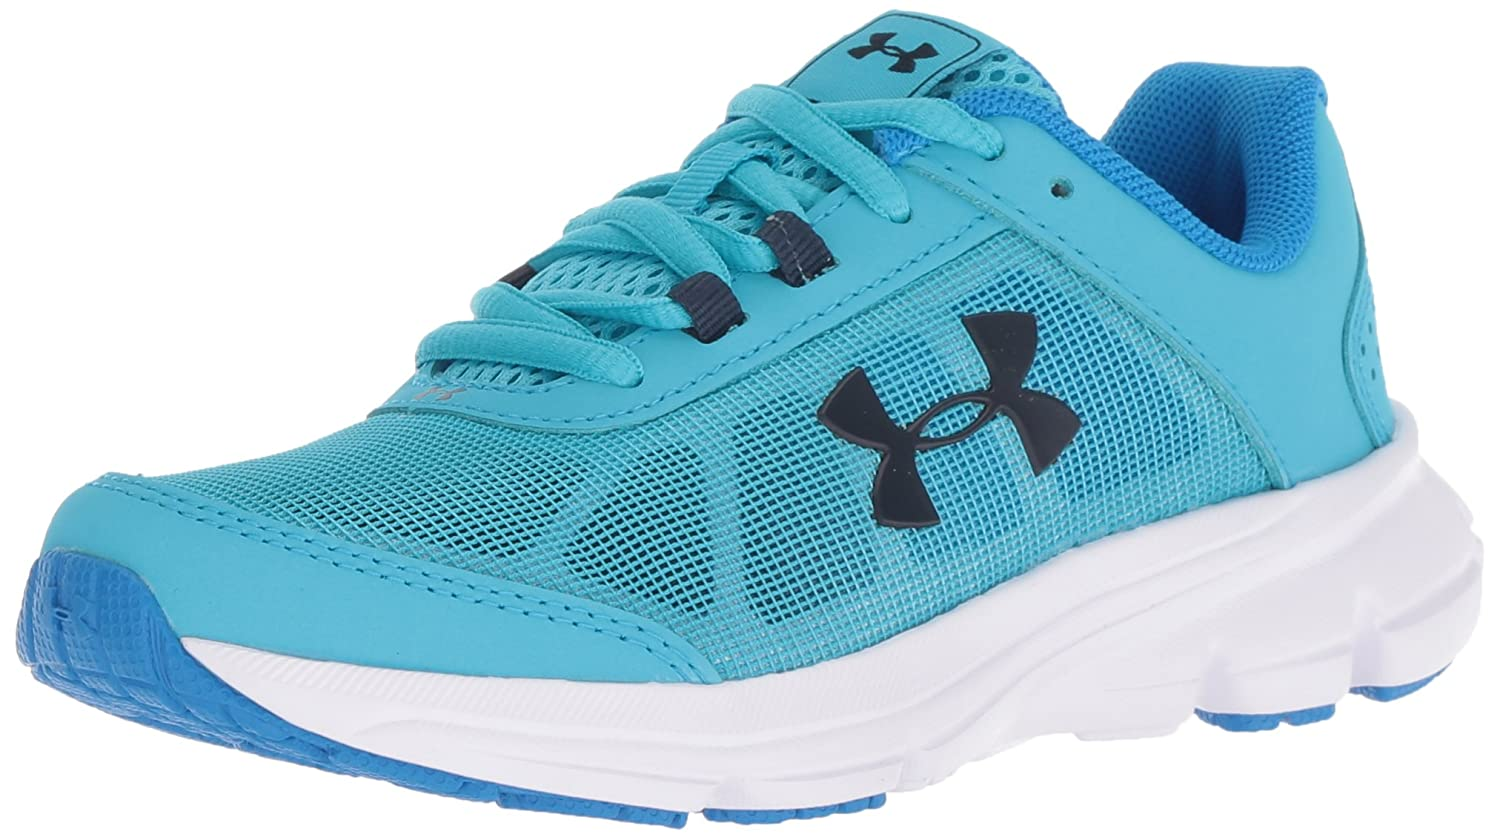 b443fb3ff57 Amazon.com | Under Armour Kids' Pre School Rave 2 Sneaker | Sneakers